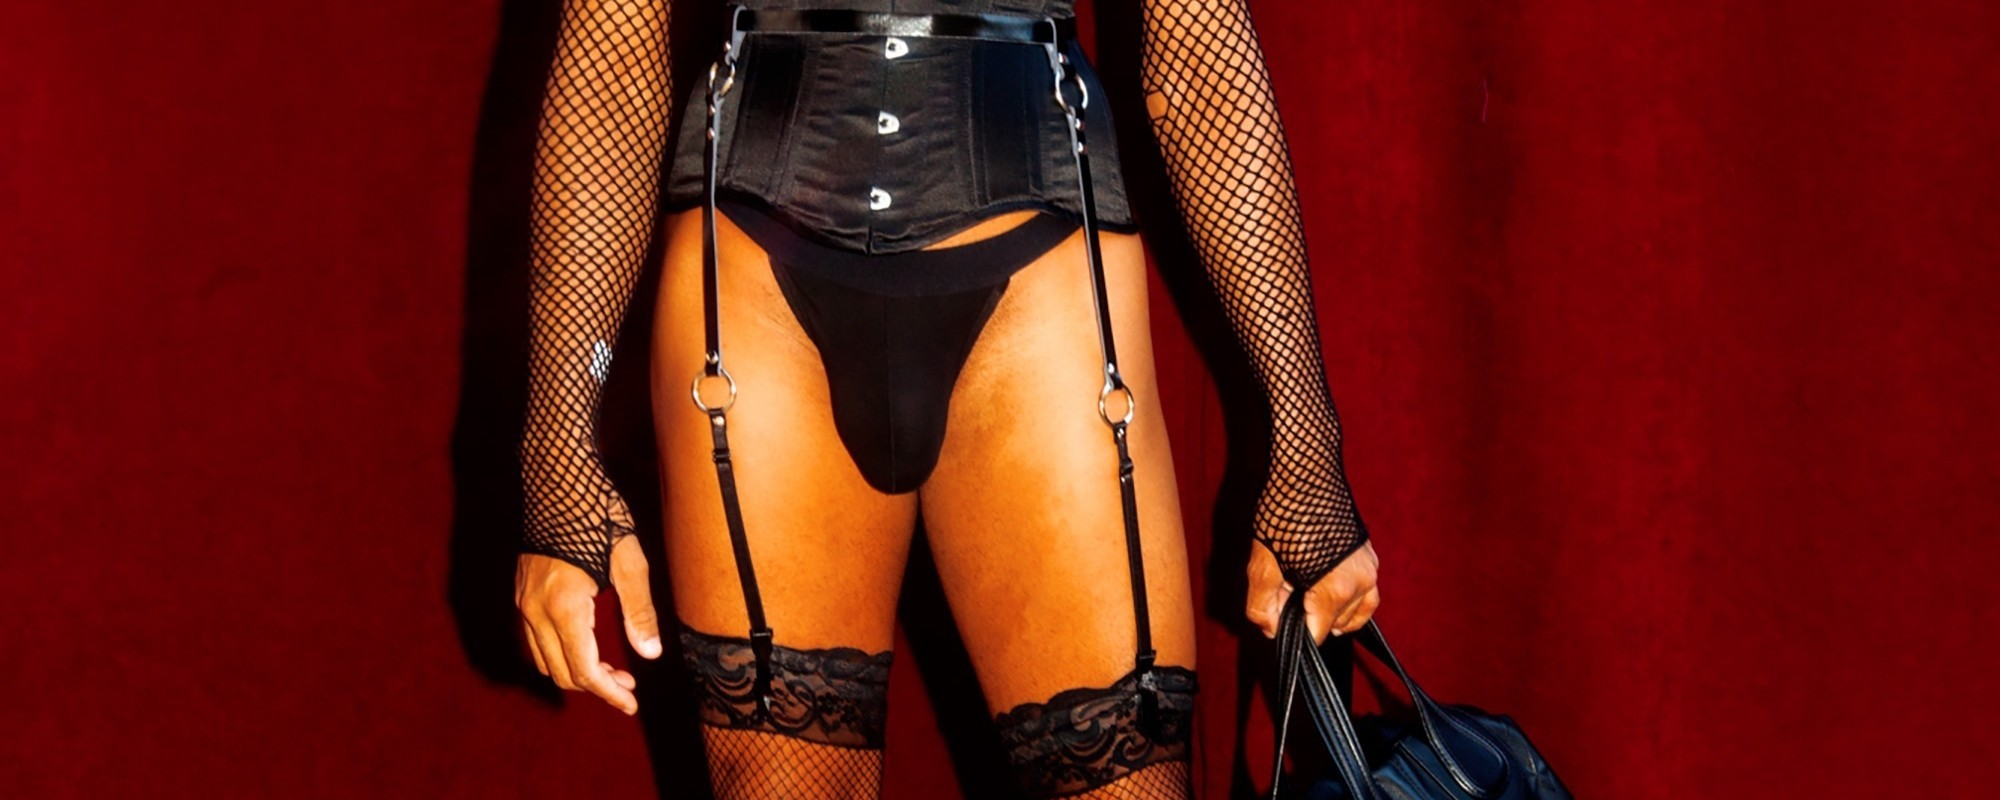 Tender Photos of an NYC BDSM Street Festival